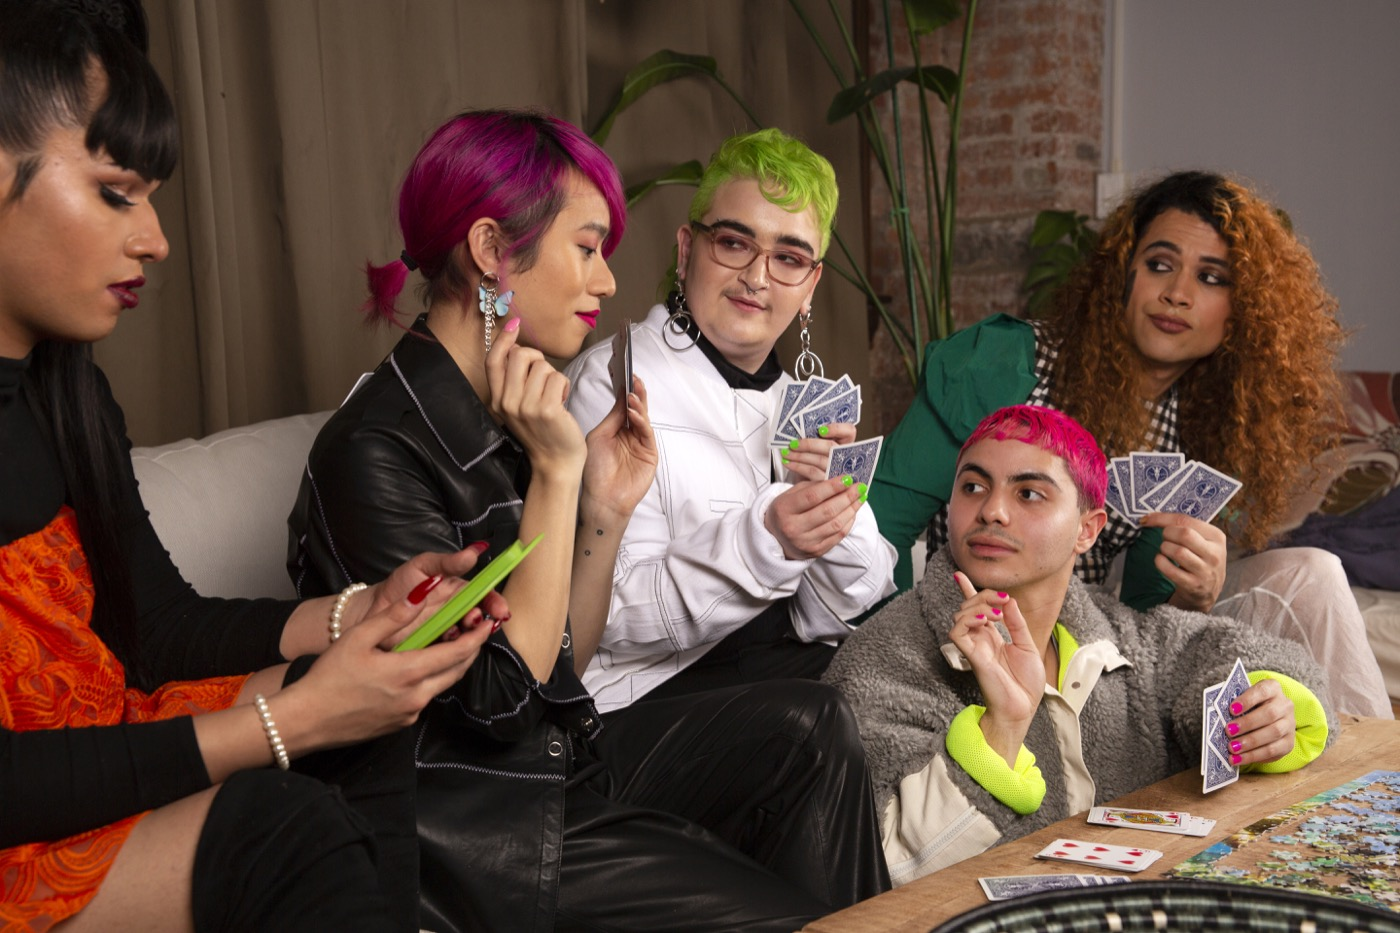 A group of friends of varying genders playing cards from the side